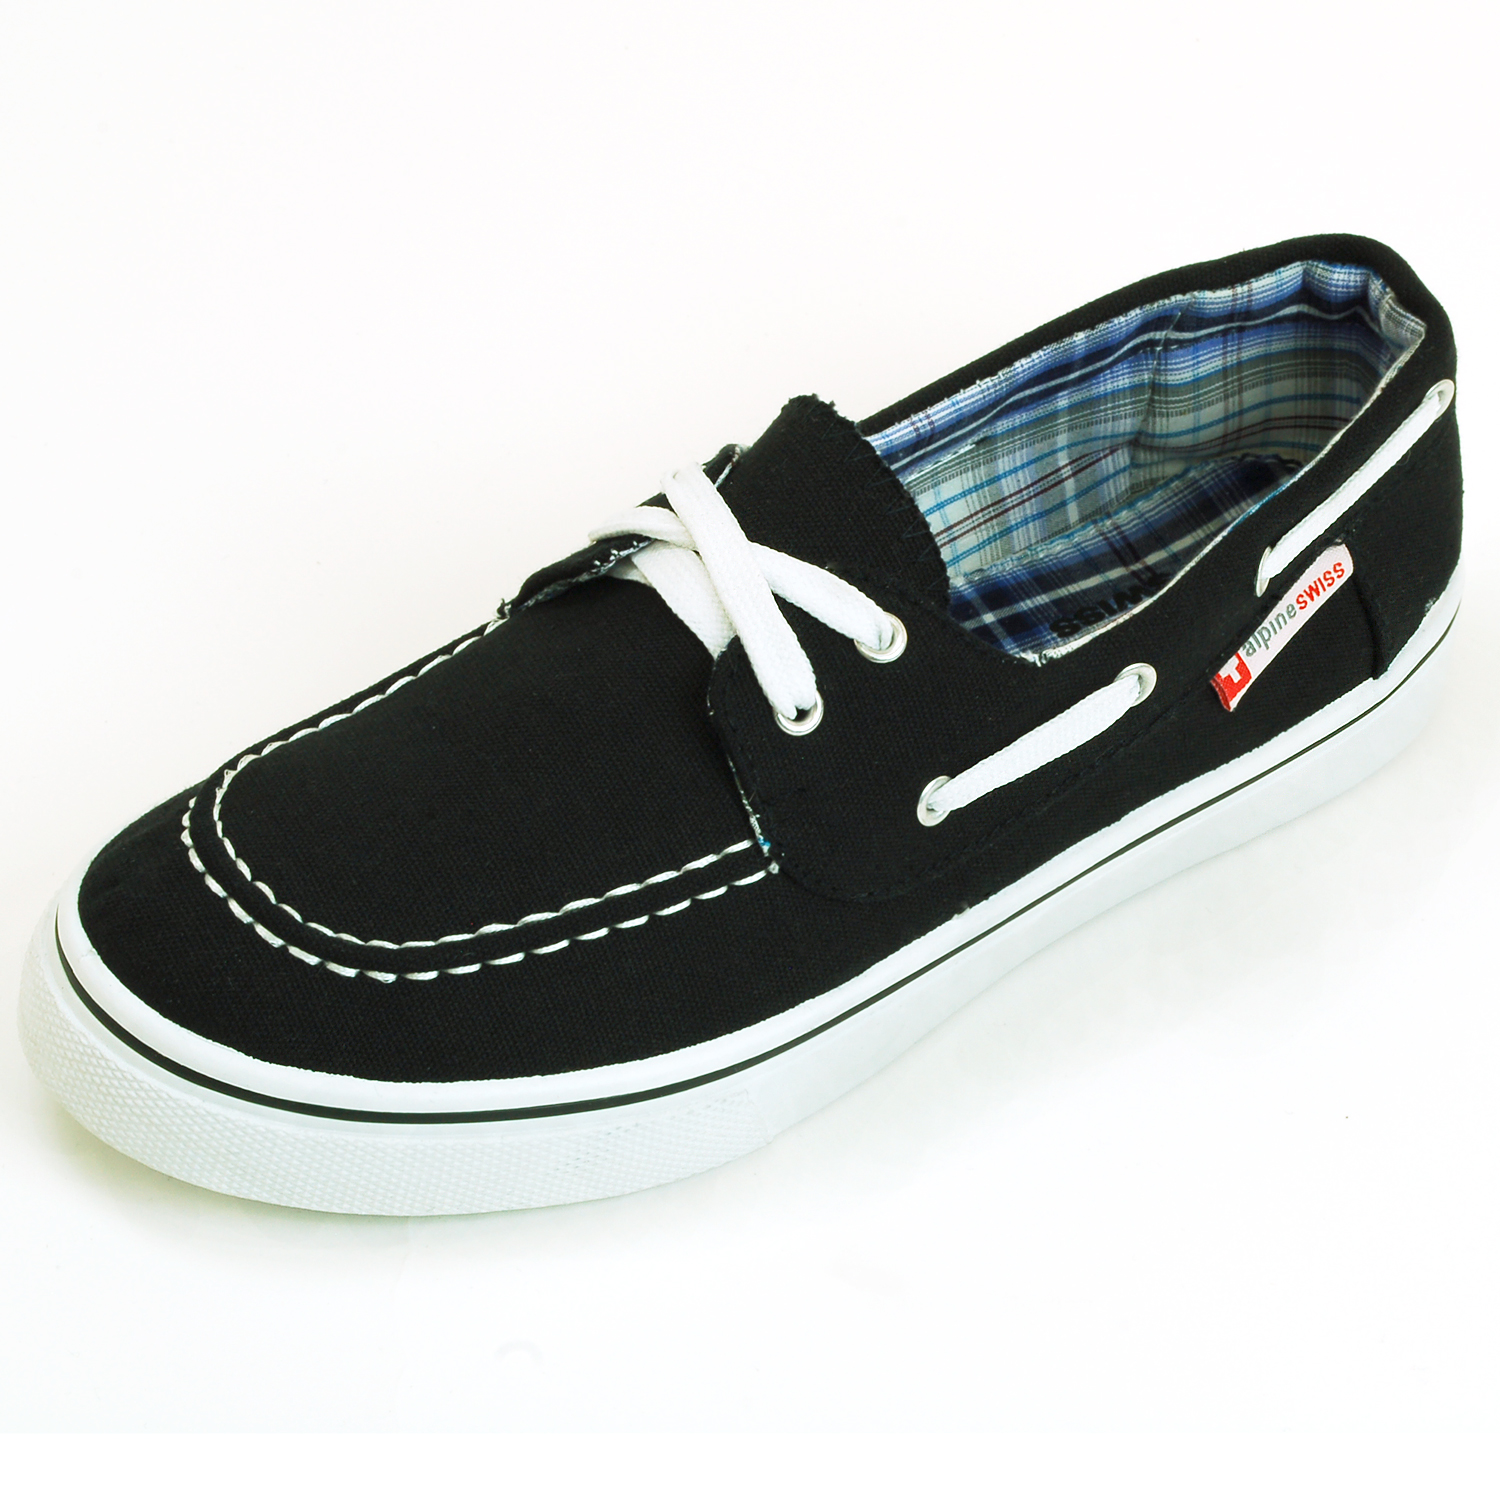 AlpineSwiss Antigua Mens Boat Shoes Lace Up Loafer Deck